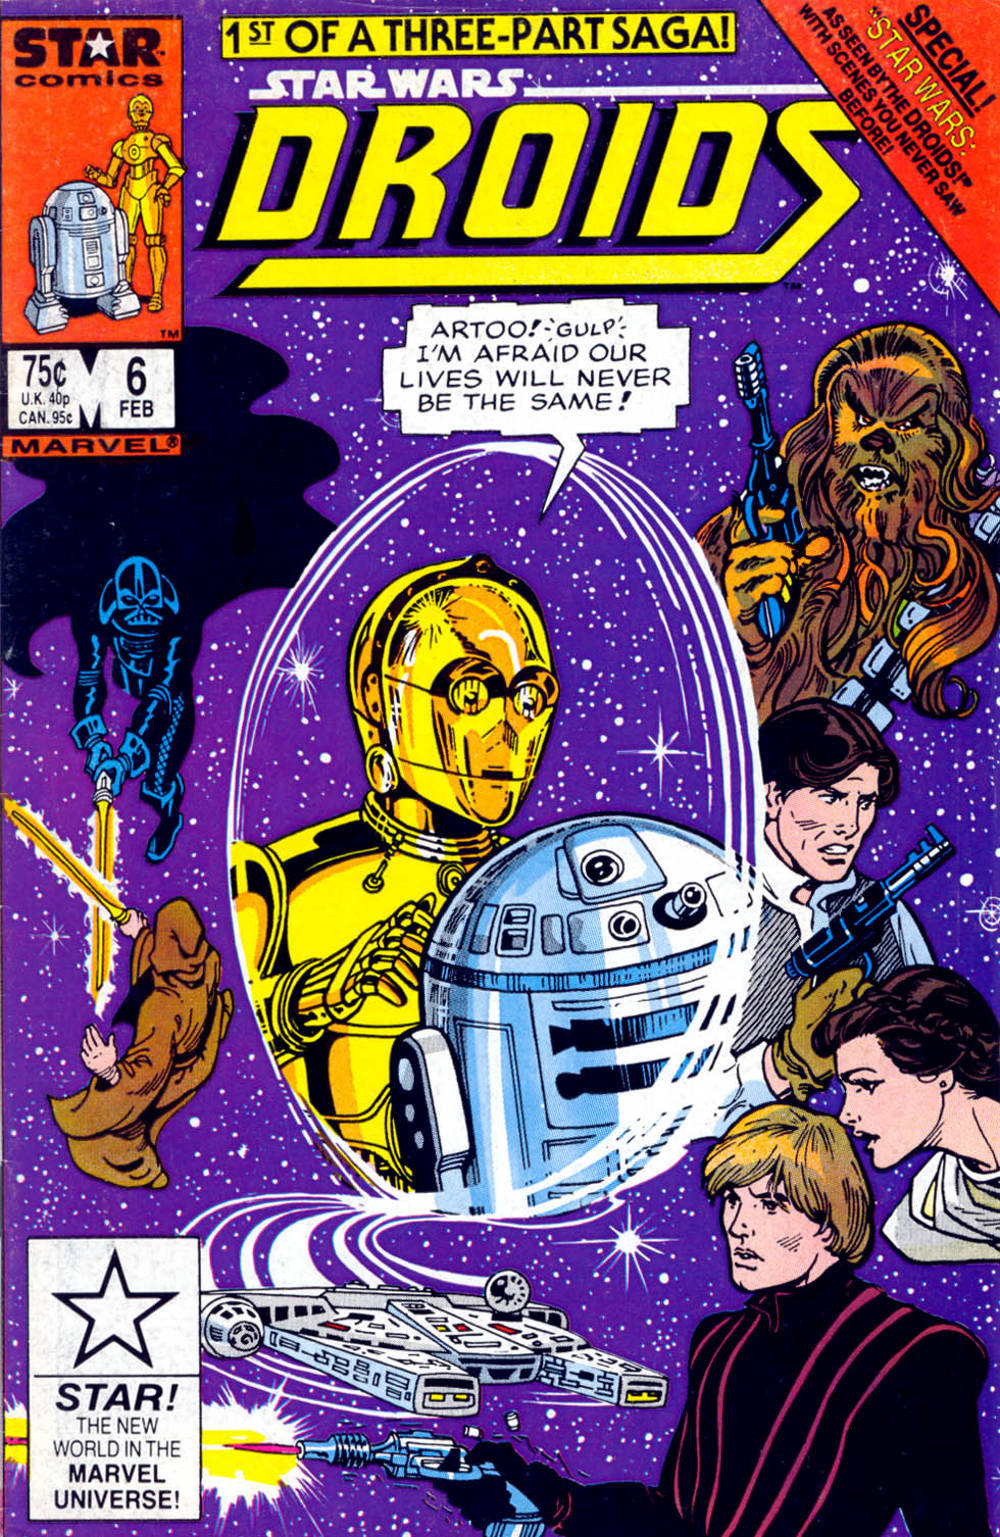 Droids #6 - Star Wars According to the Droids, Part 1